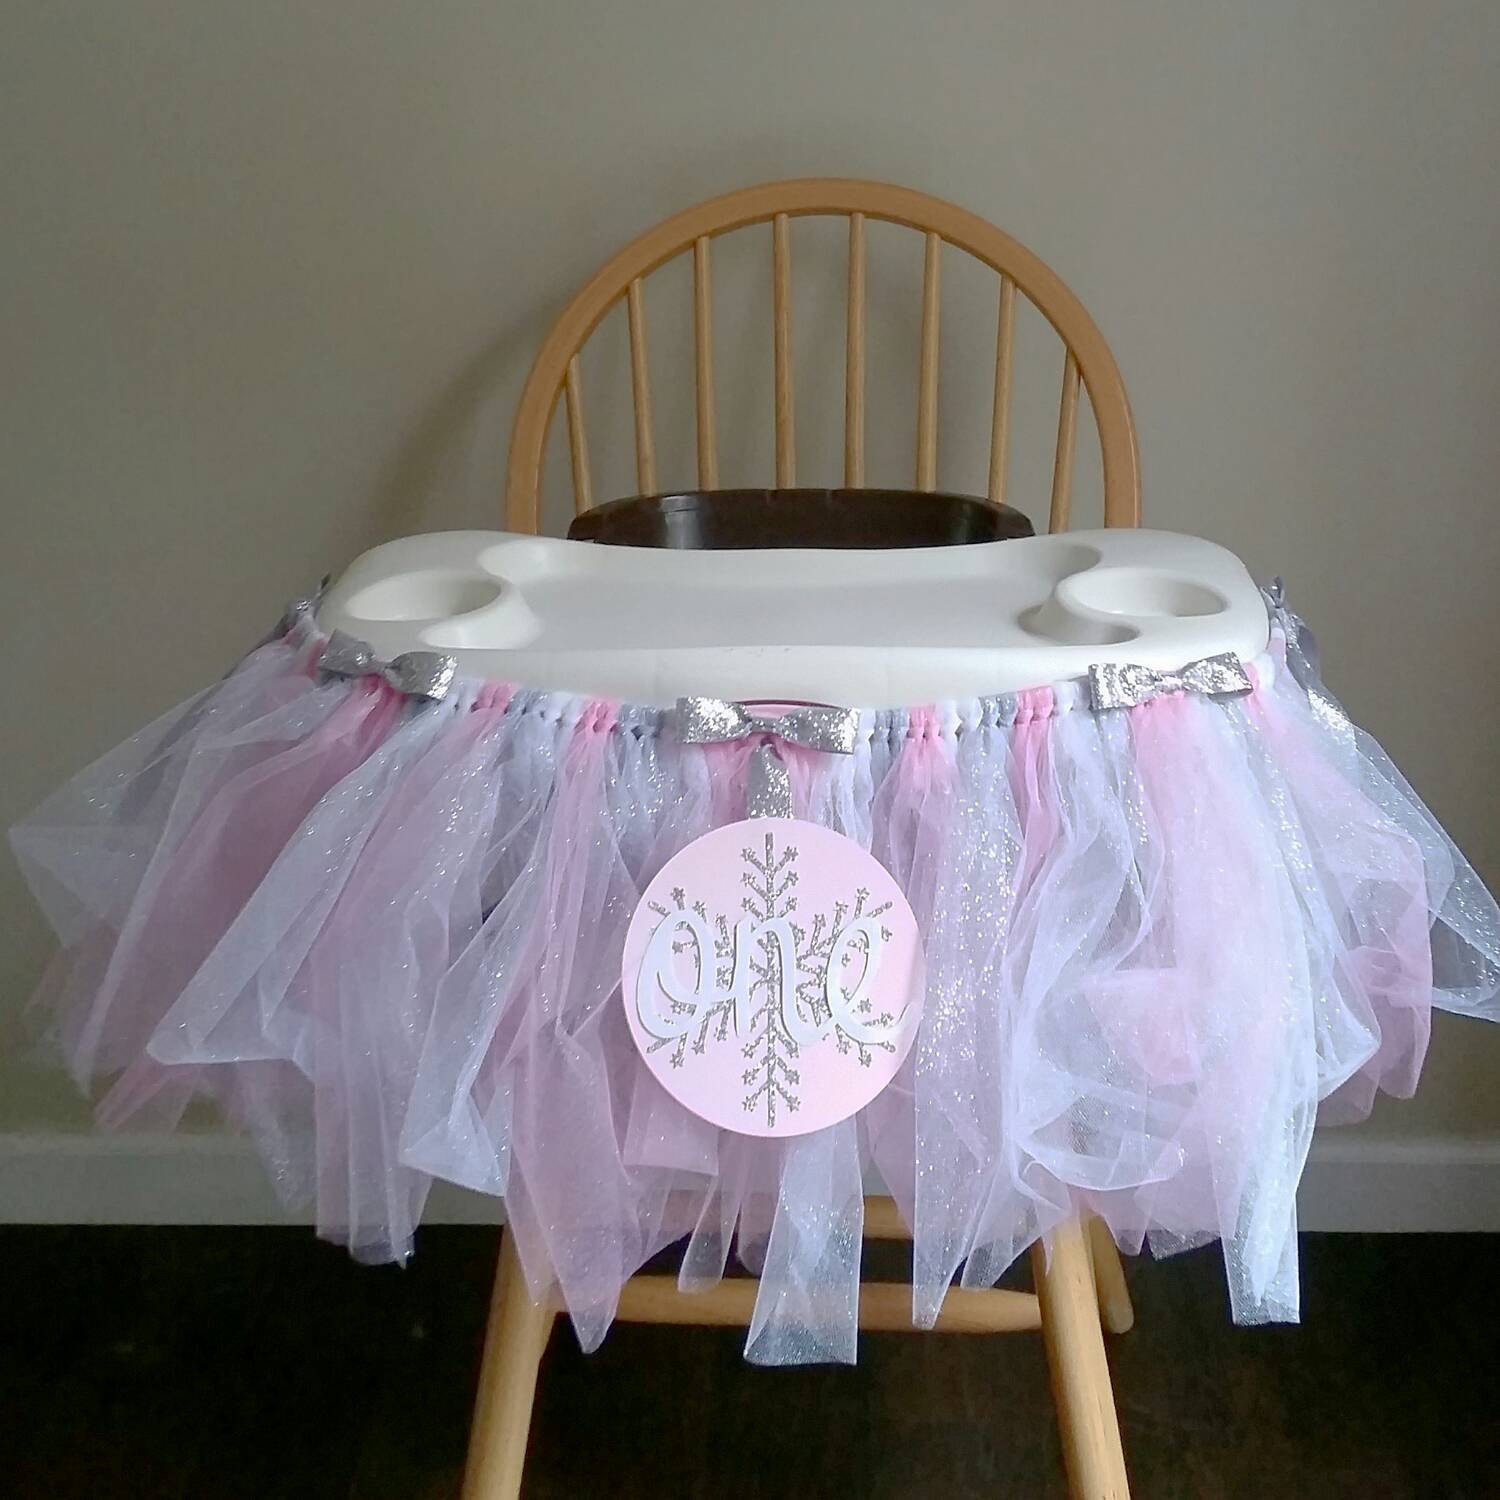 Best ideas about First Birthday Highchair Decorations . Save or Pin First Birthday Highchair Tutu Winter ederland High Chair Now.